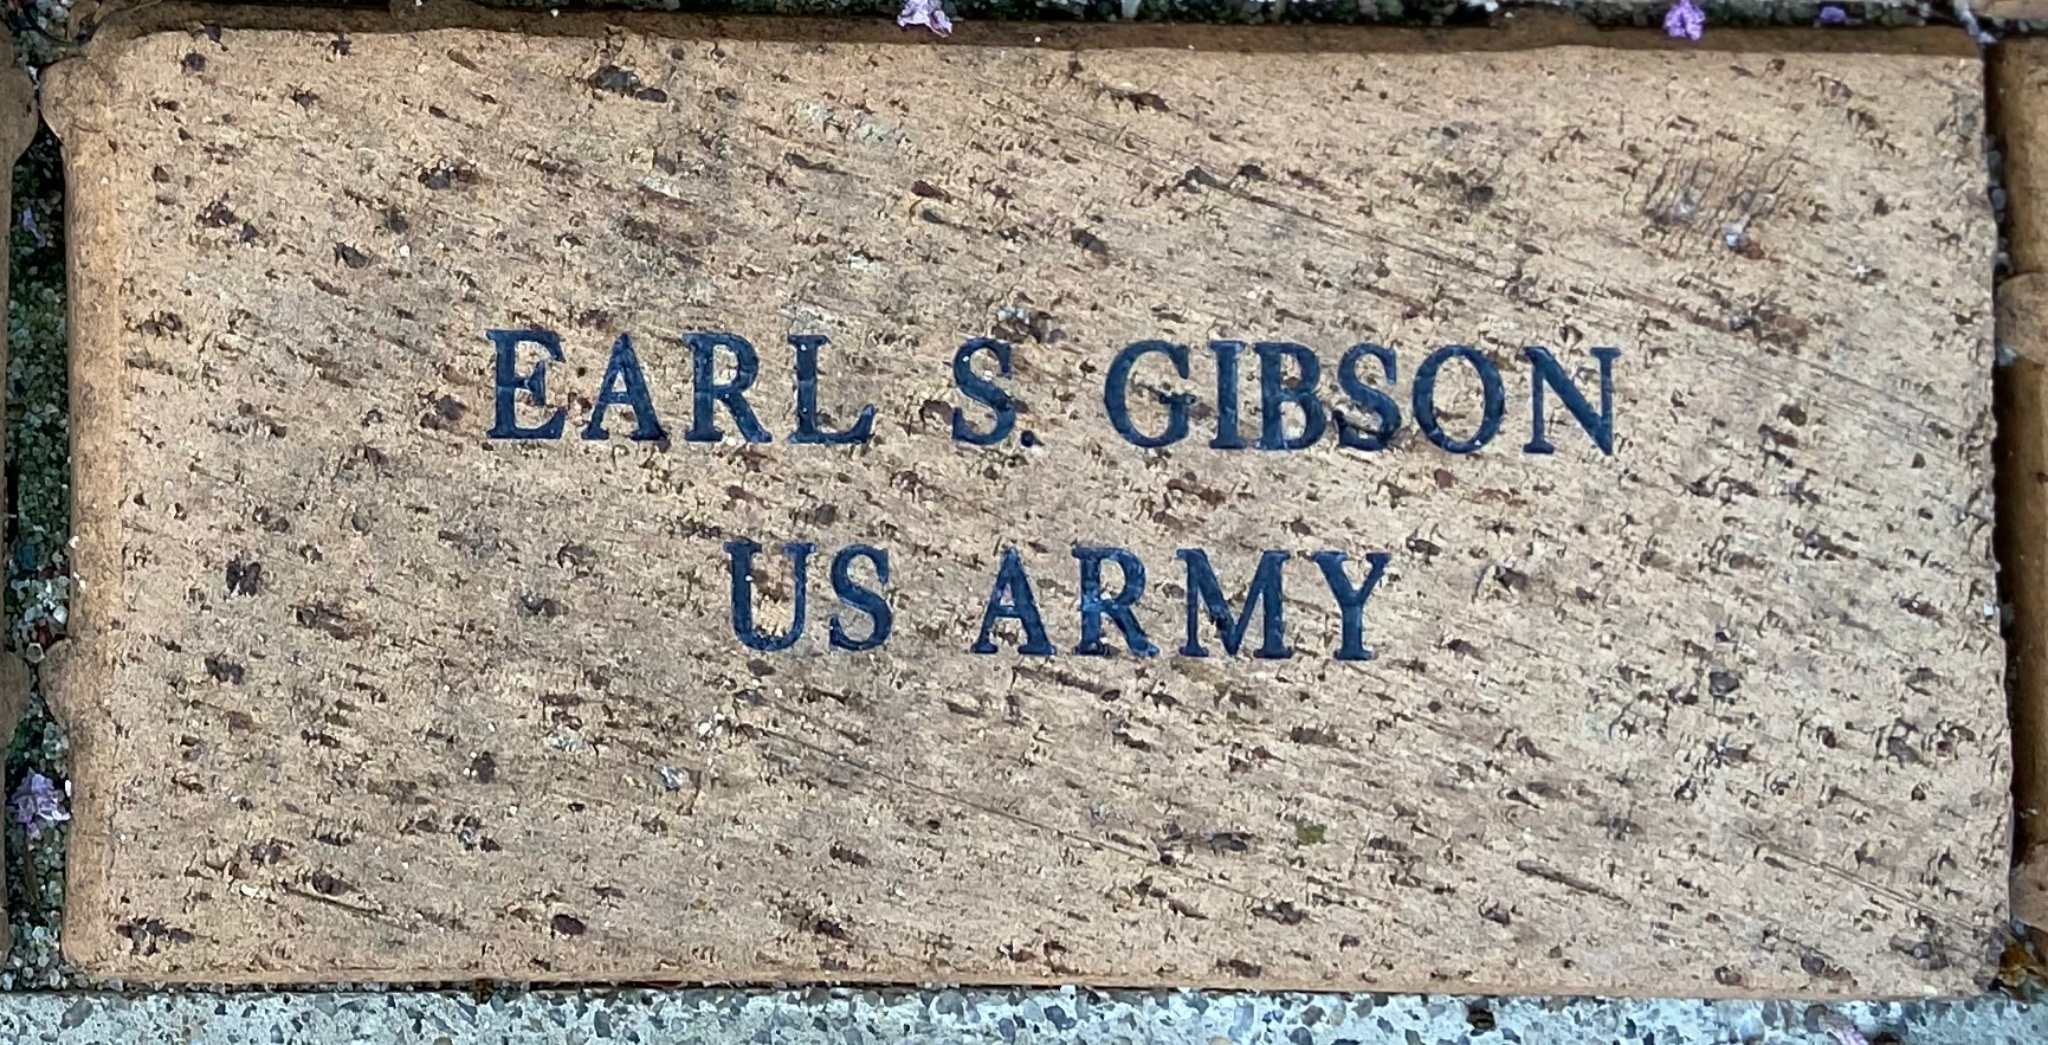 EARL S. GIBSON US ARMY